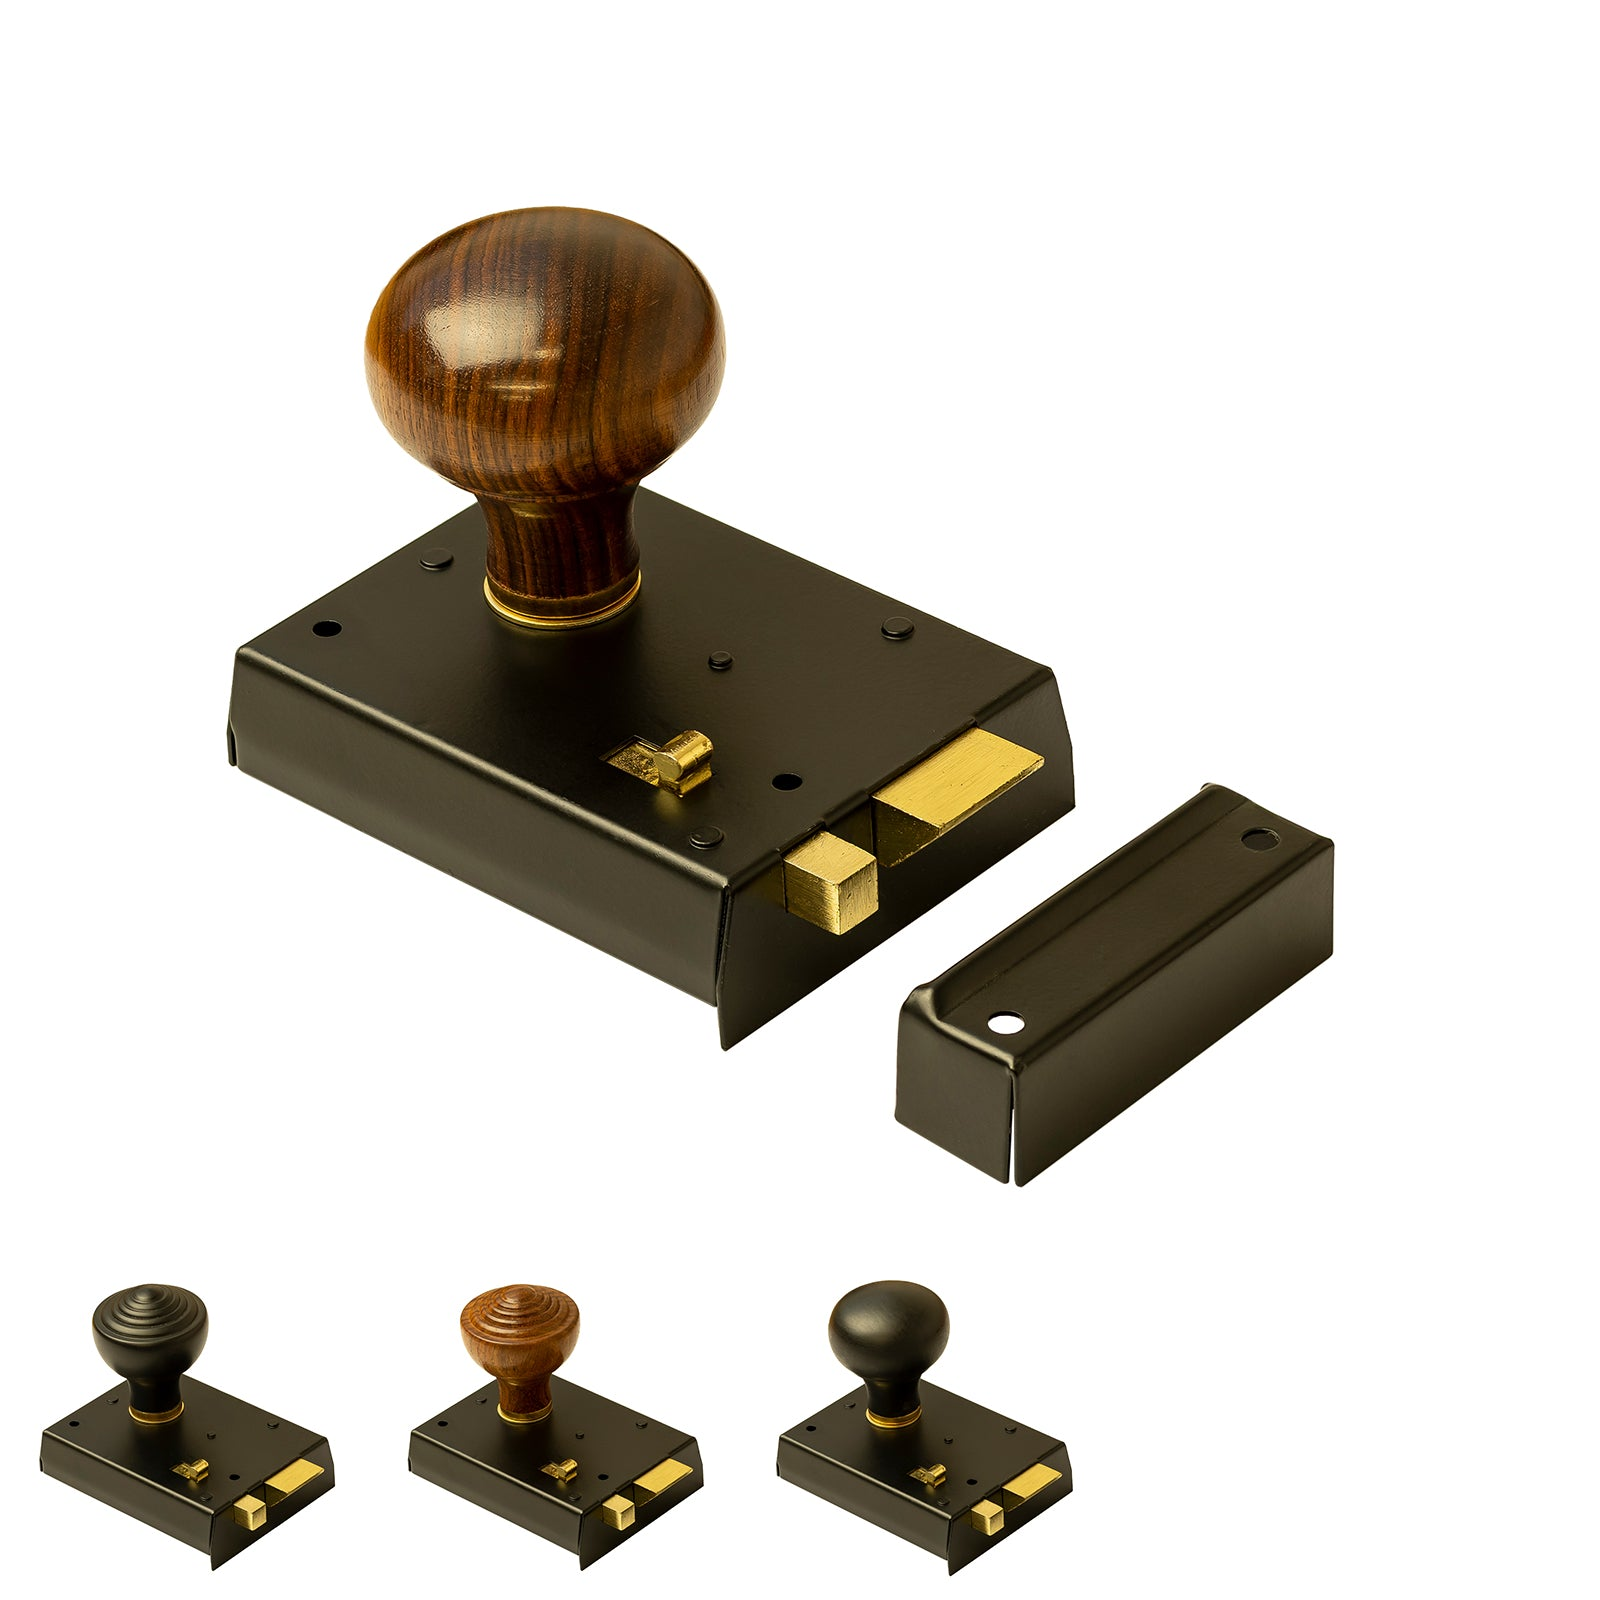 Bathroom rim locks with Rosewood door knobs